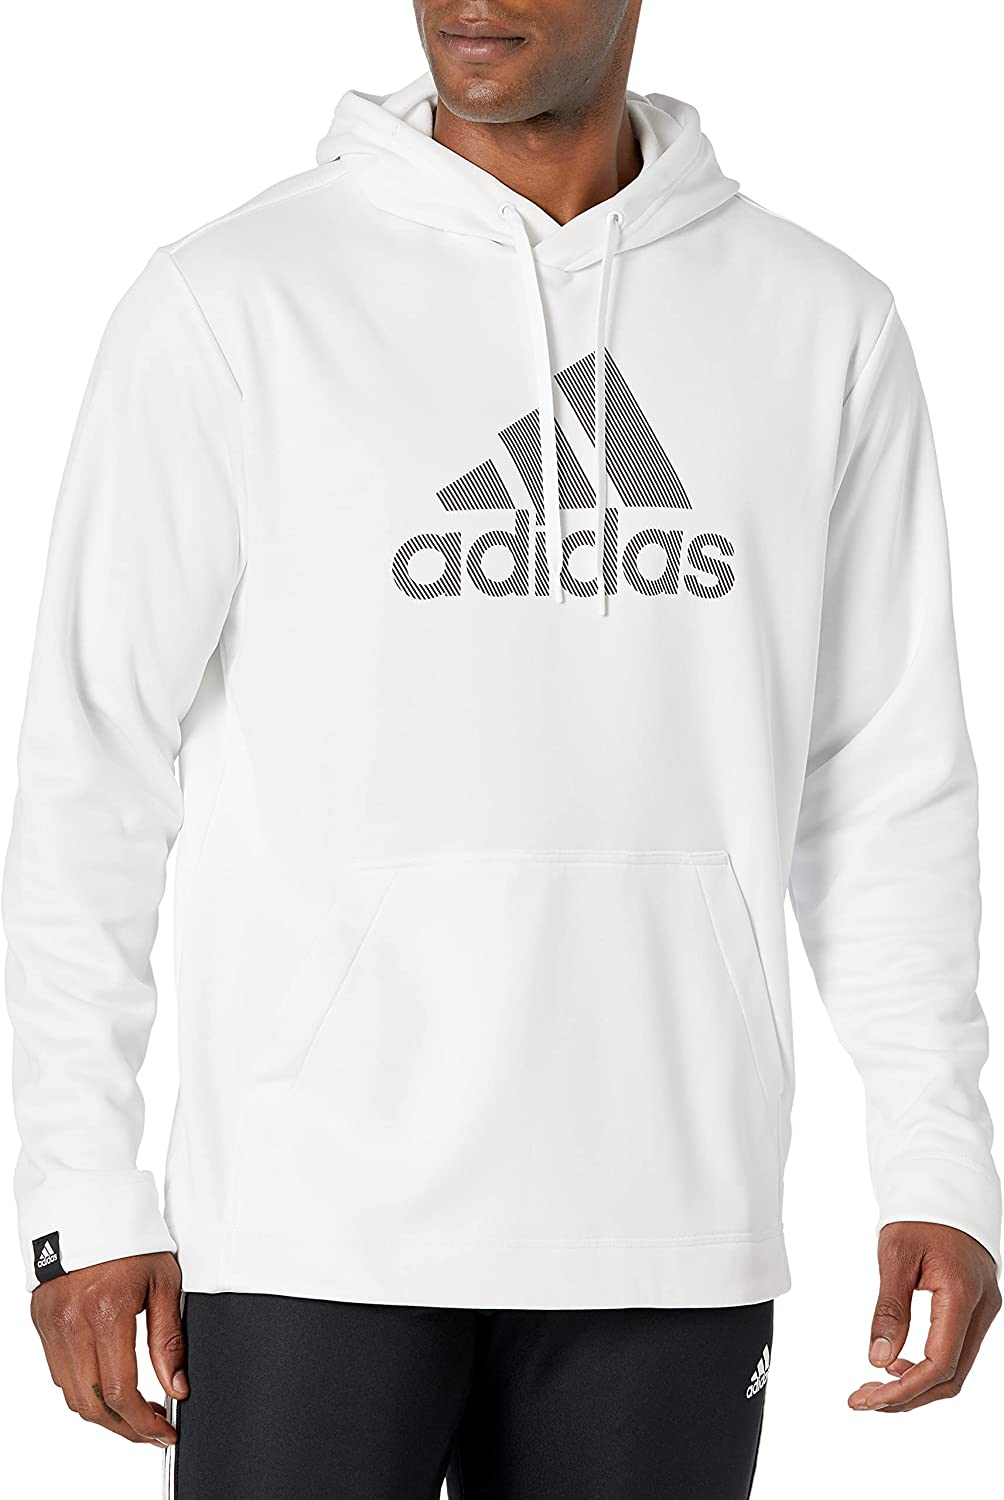 adidas Men's Game and Go Pullover Hooded Sweatshirt